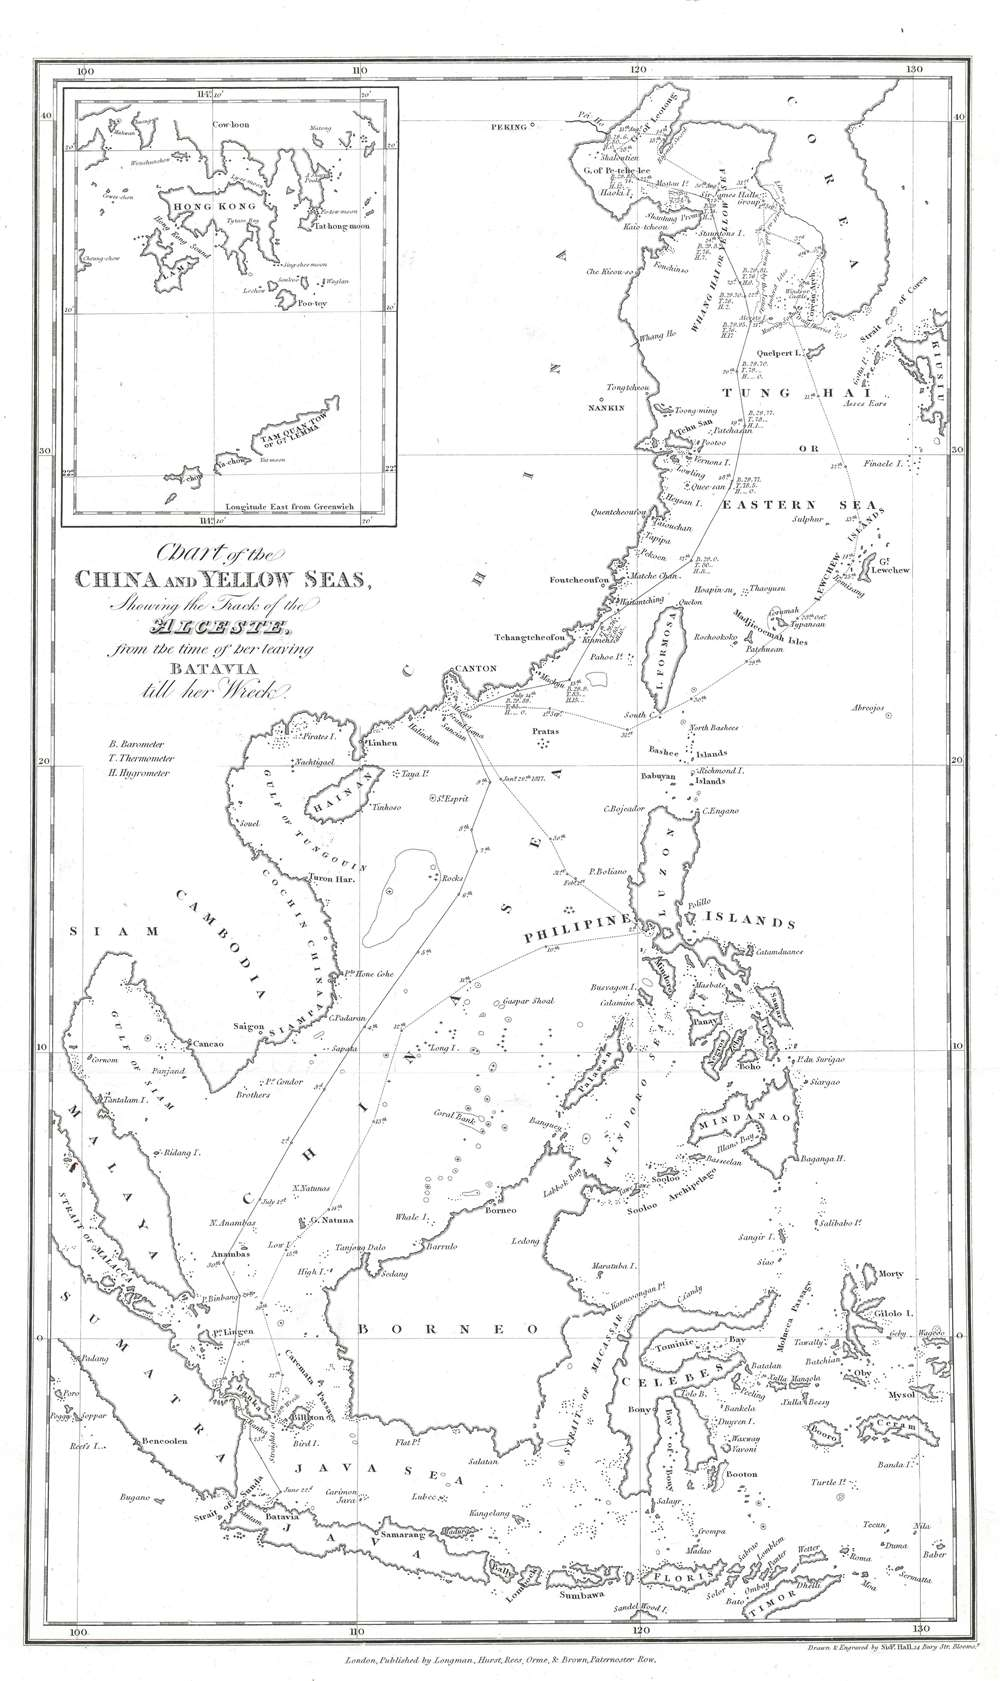 Chart of the China and Yellow Seas, Showing the Track of the <i>Alceste</i>, from the time of her leaving Batavia till her wreck. - Main View